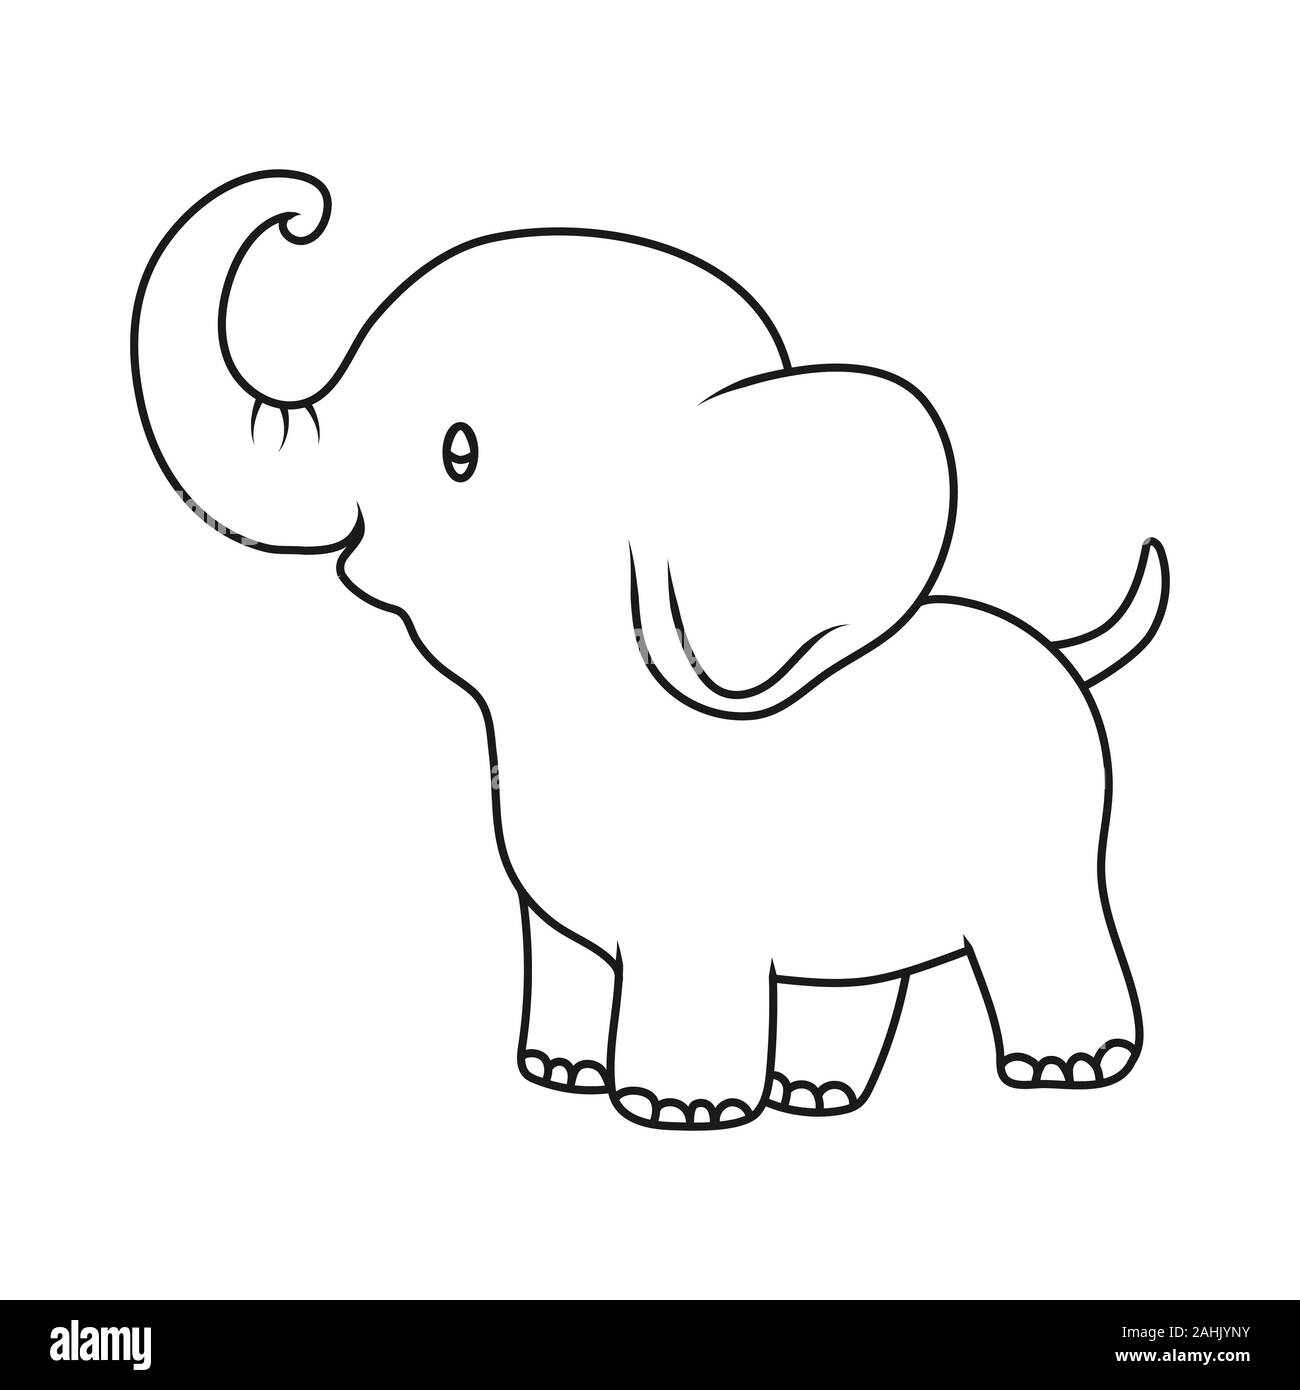 Cartoon Elephant High Resolution Stock Photography And Images Alamy